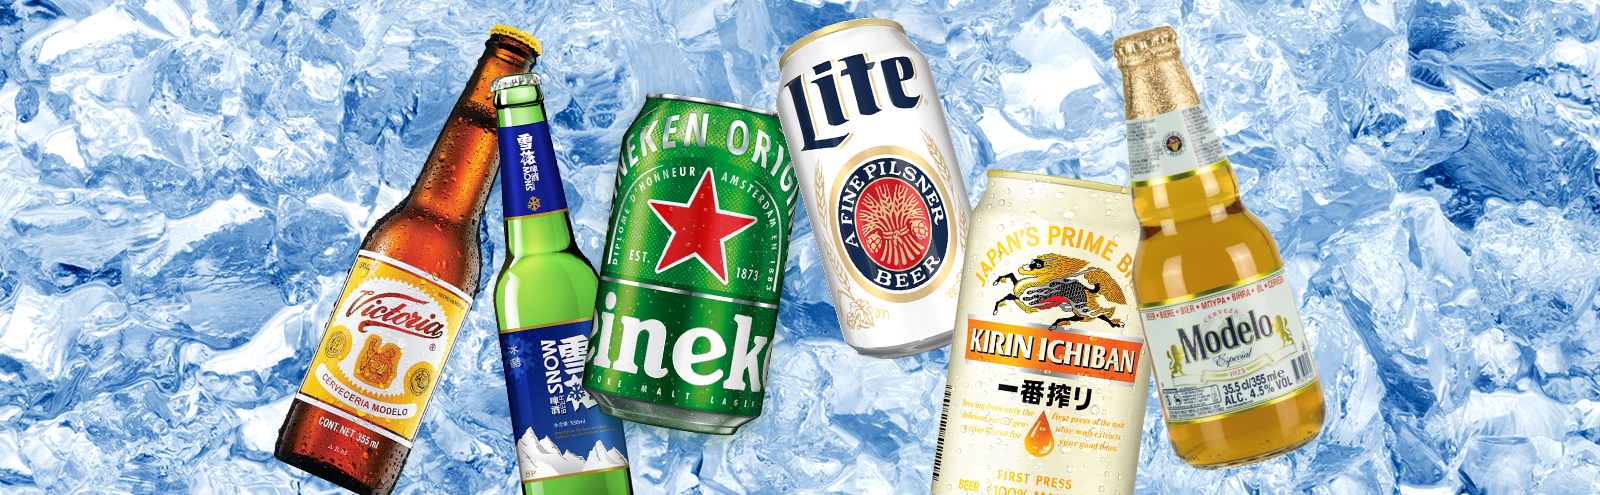 We Re-Tried The World's Biggest Beer Brands — Here Are Our Tasting Notes